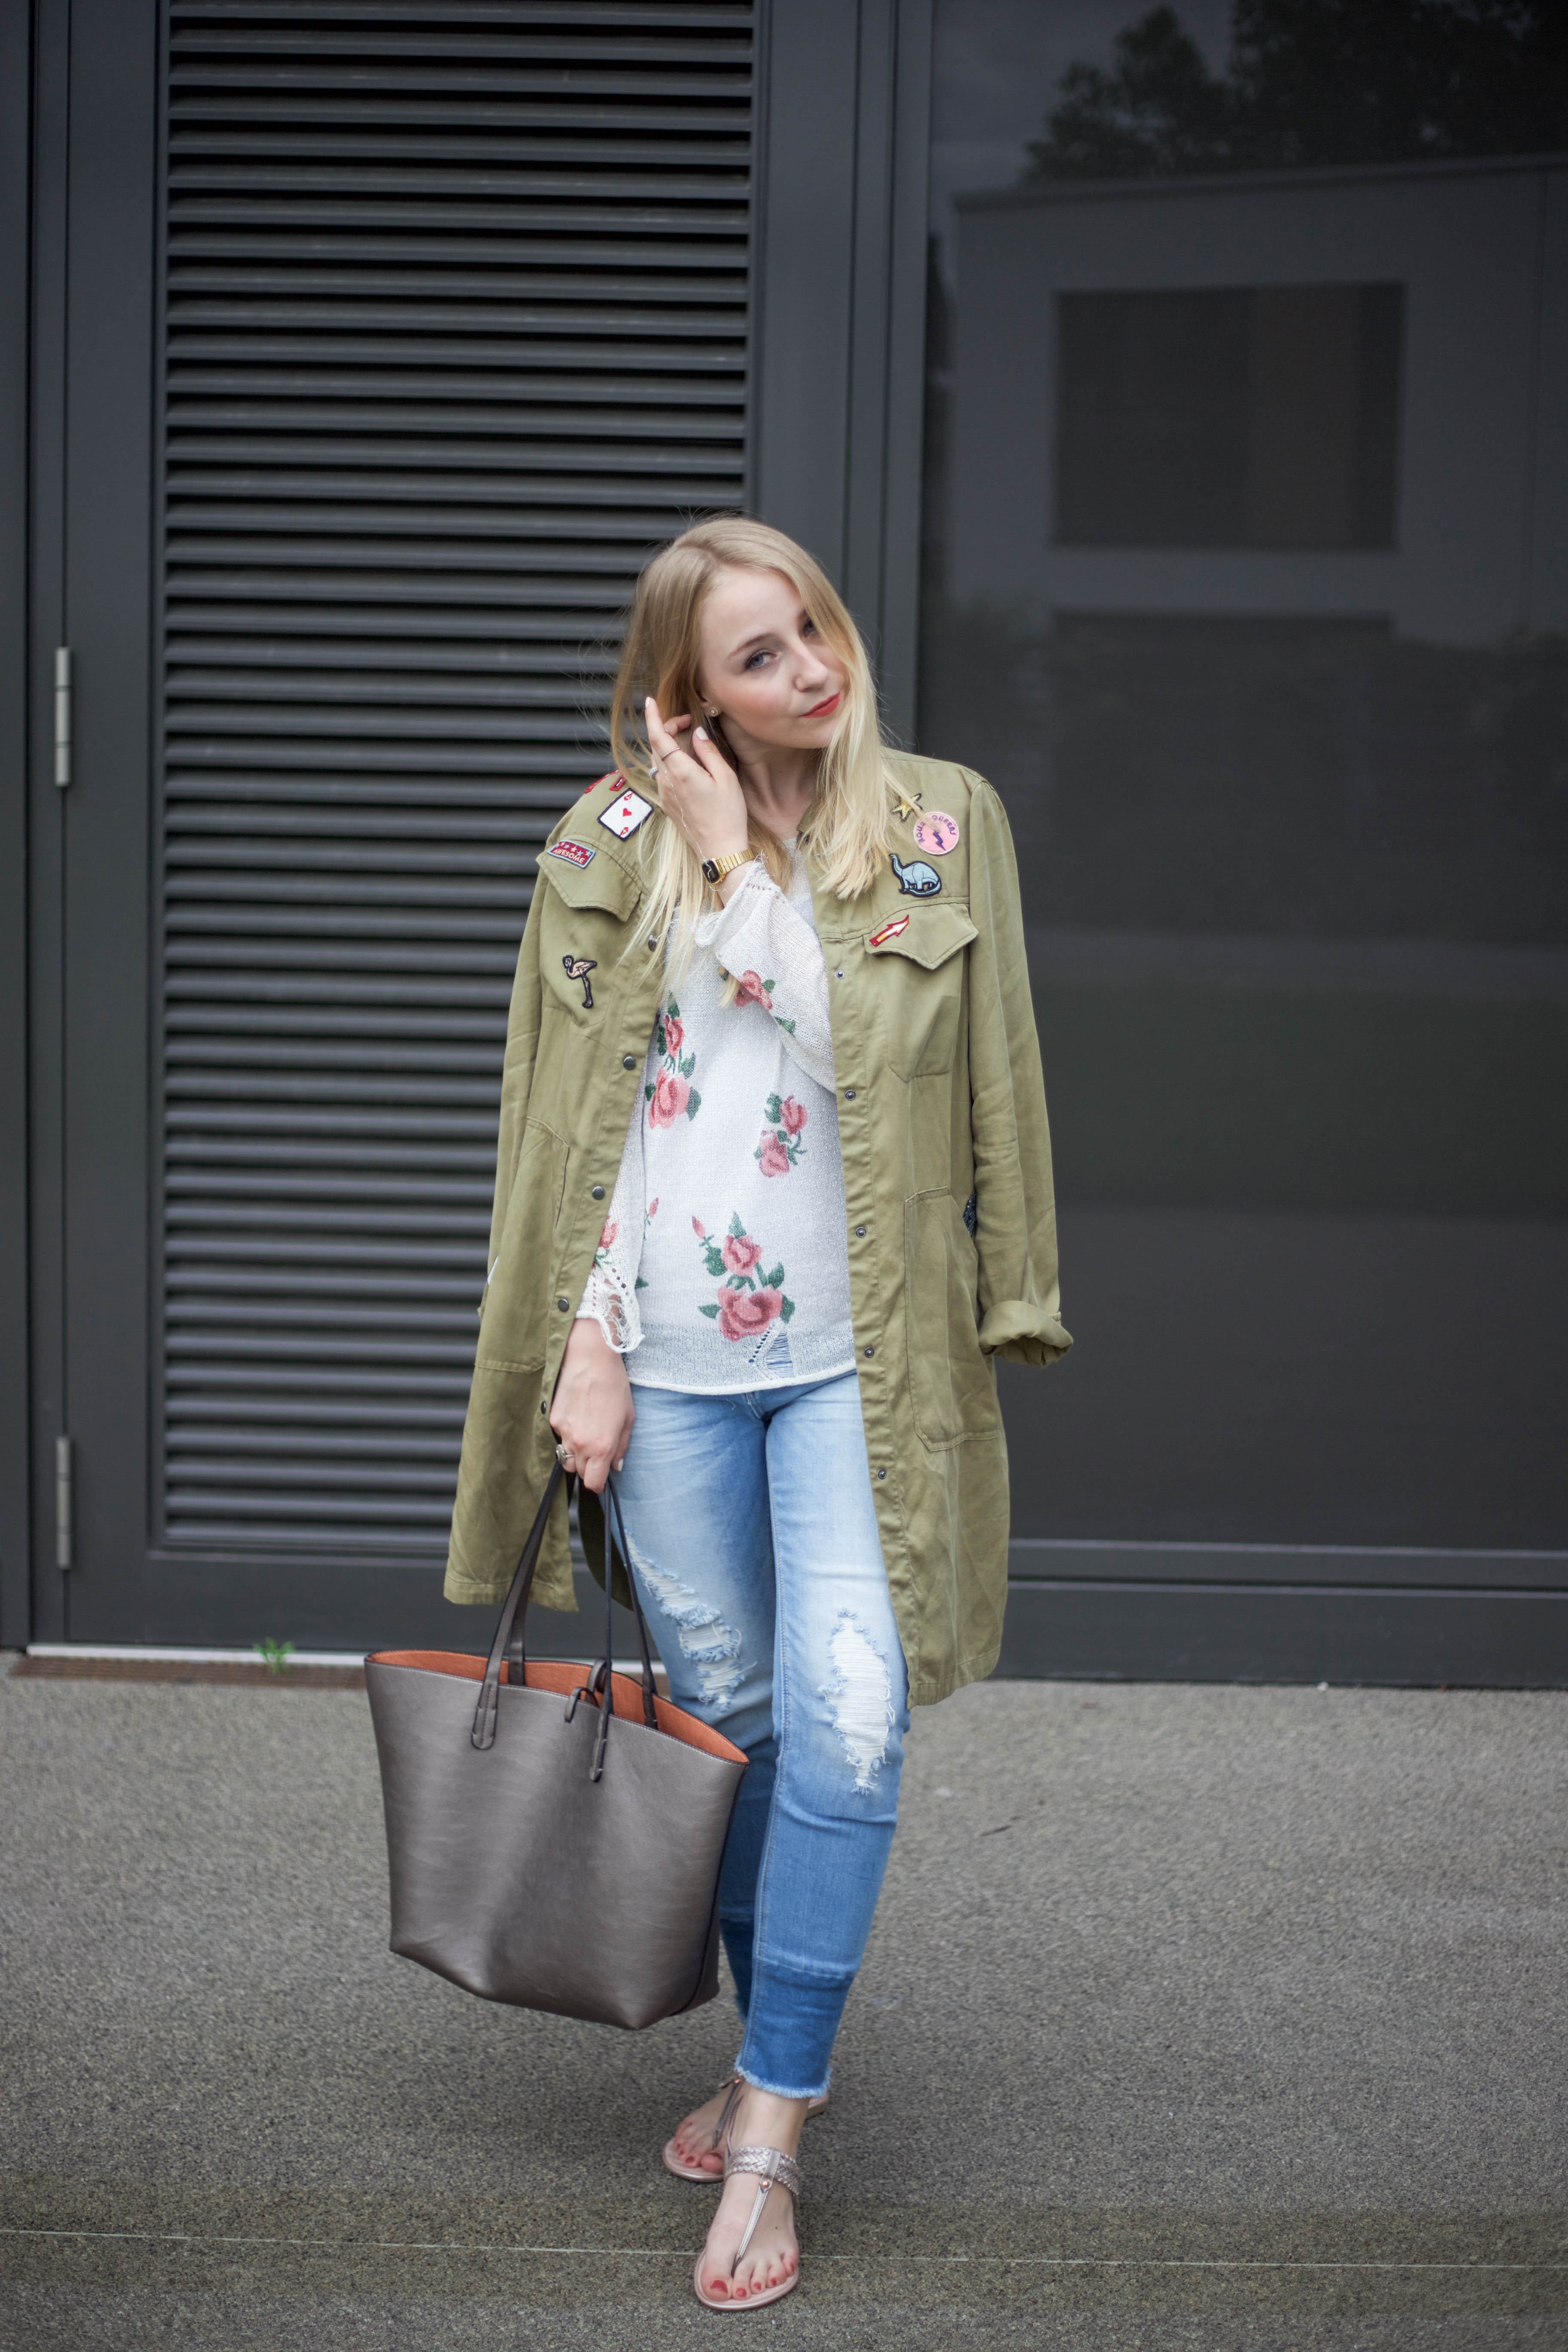 roland-schuhe-trendpage-outfit-jacke-patches-ripped-jeans_9416